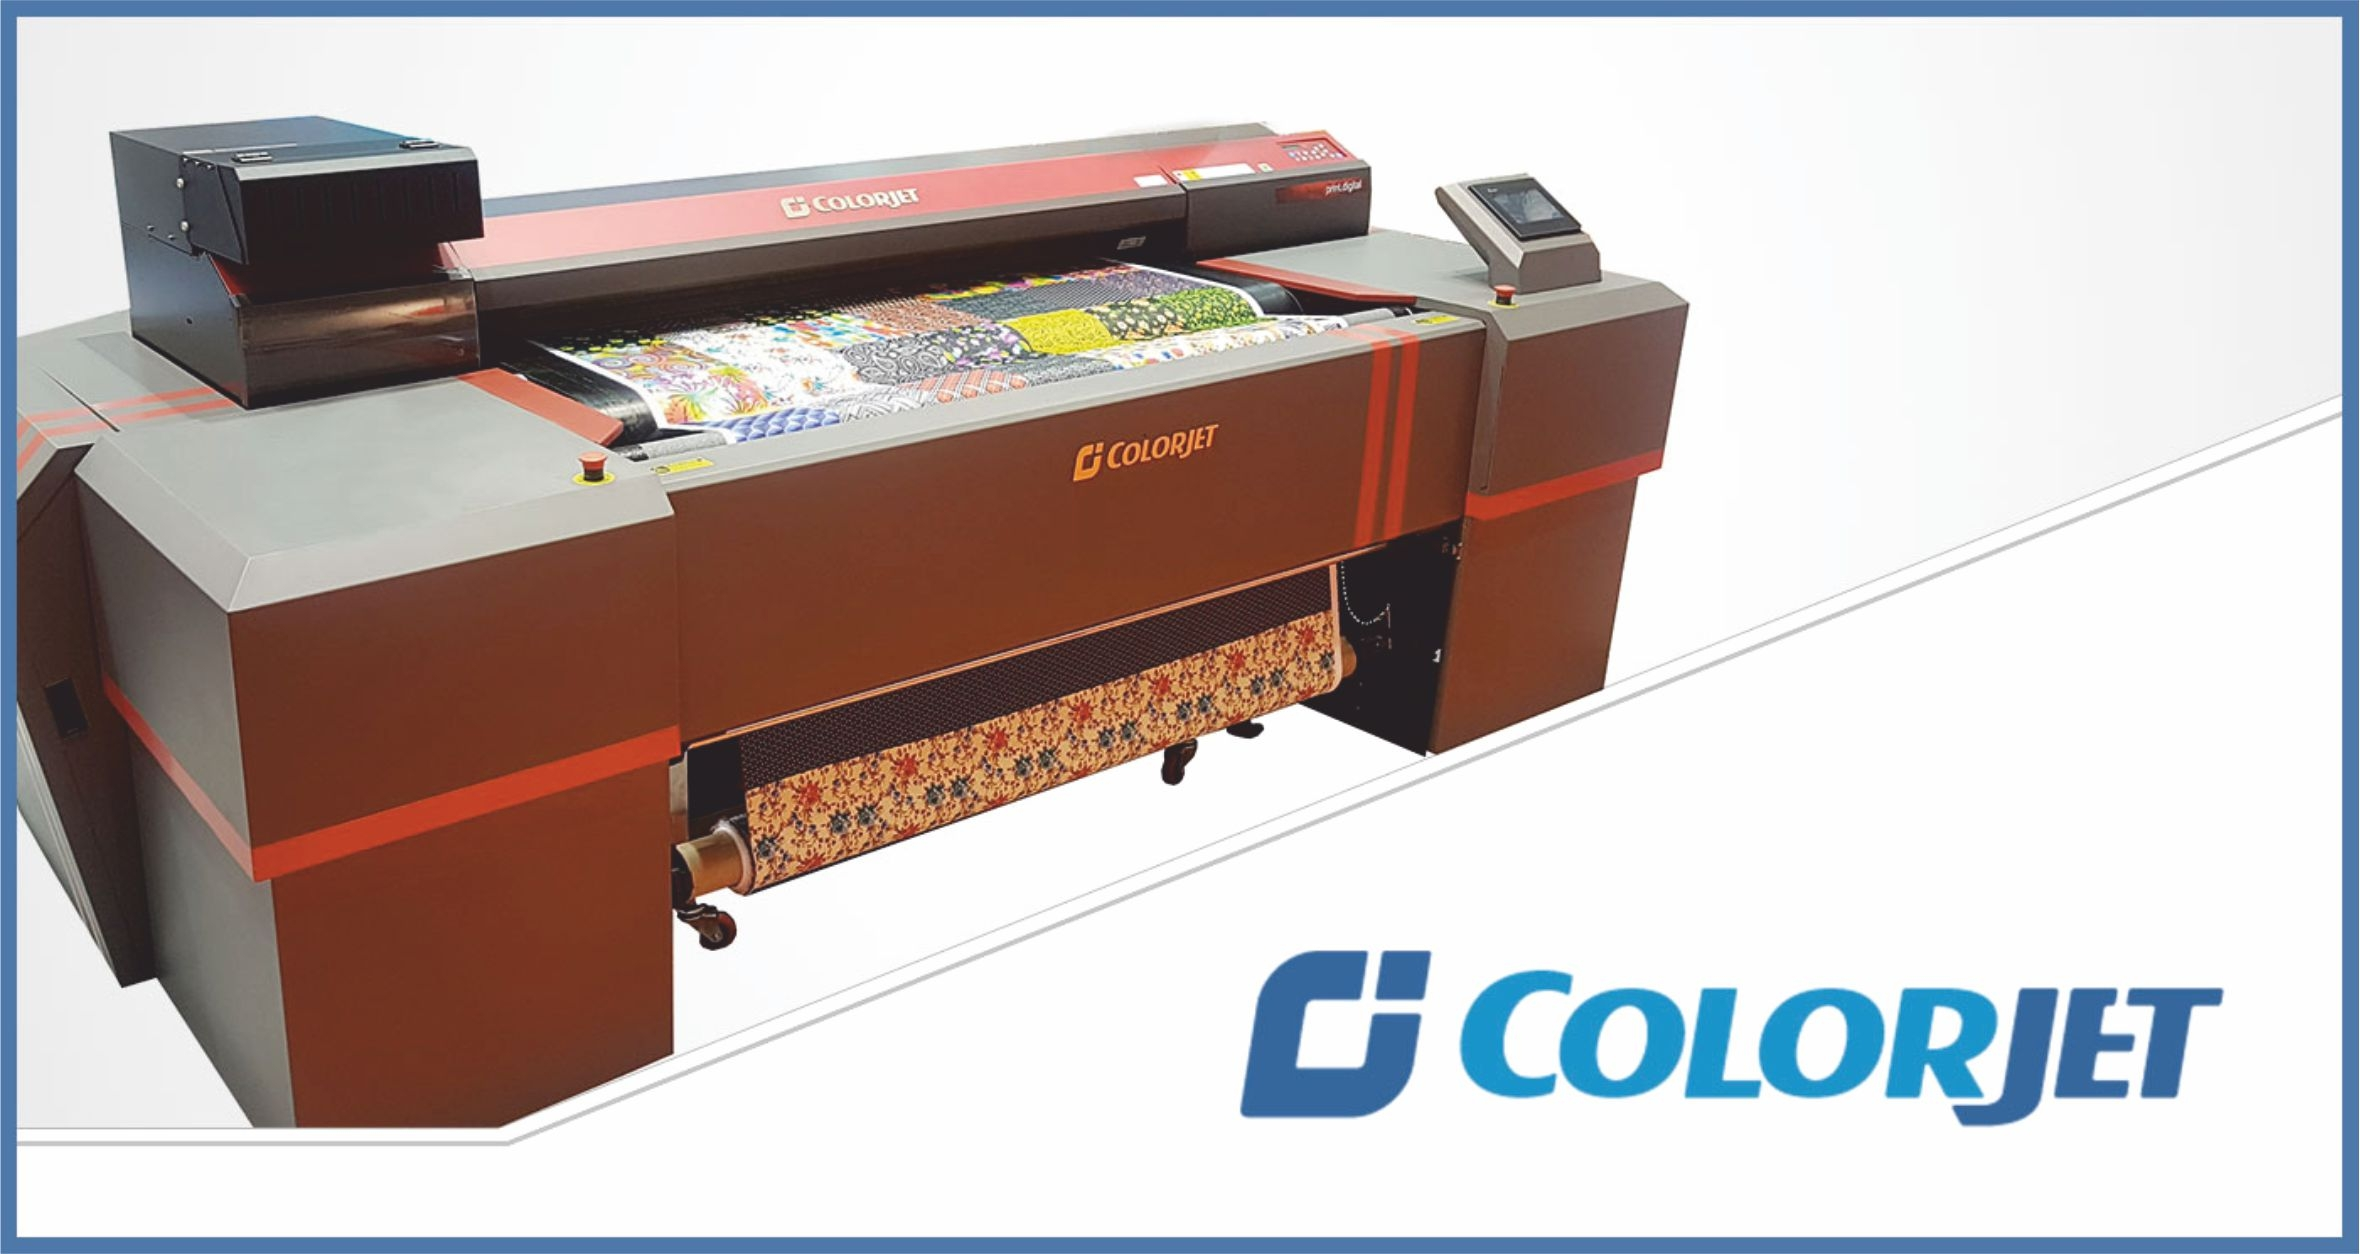 Colorjet to display TXF at Heimtextil India